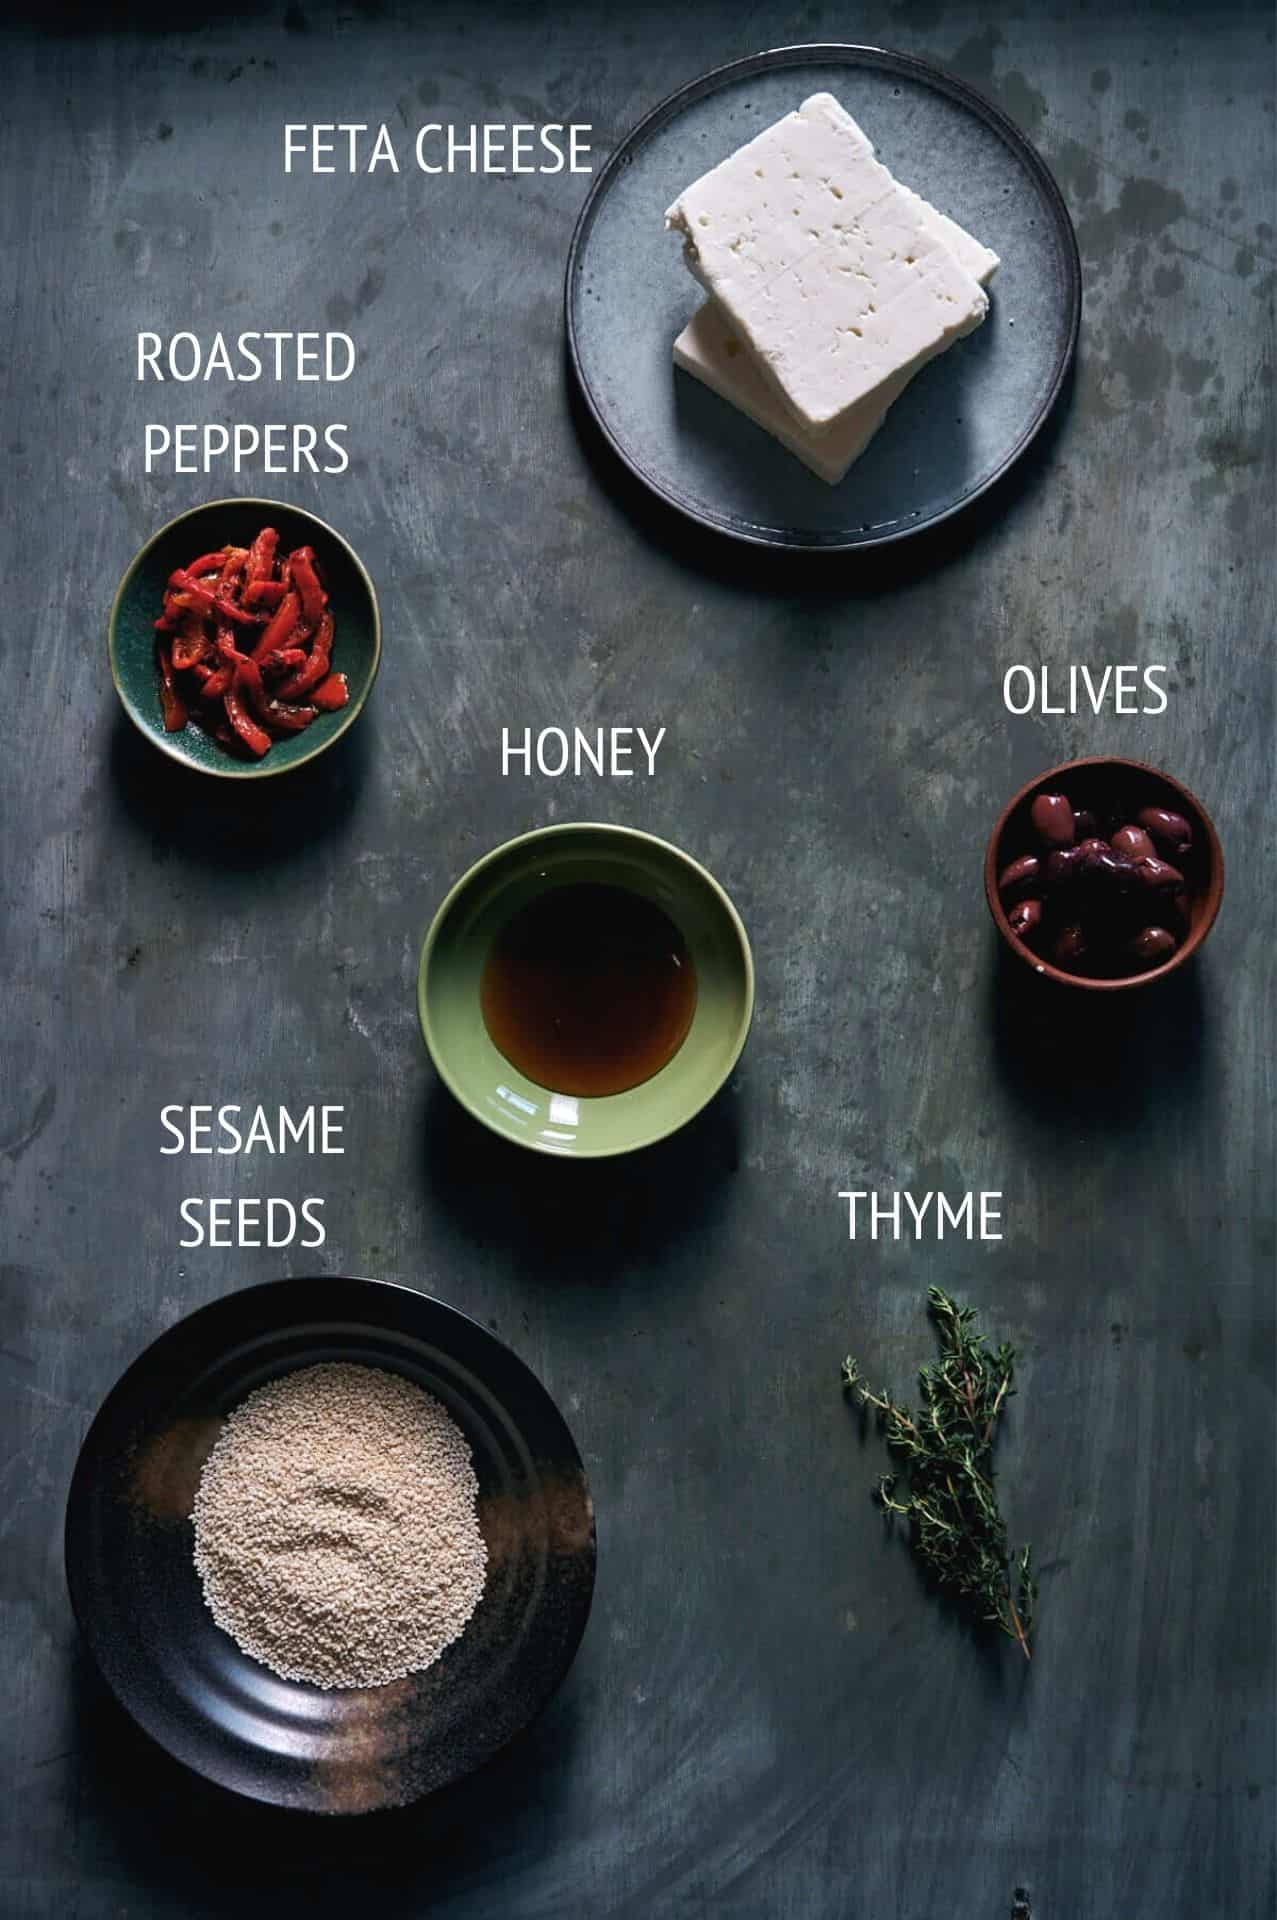 a table with all the ingredients required to make baked feta